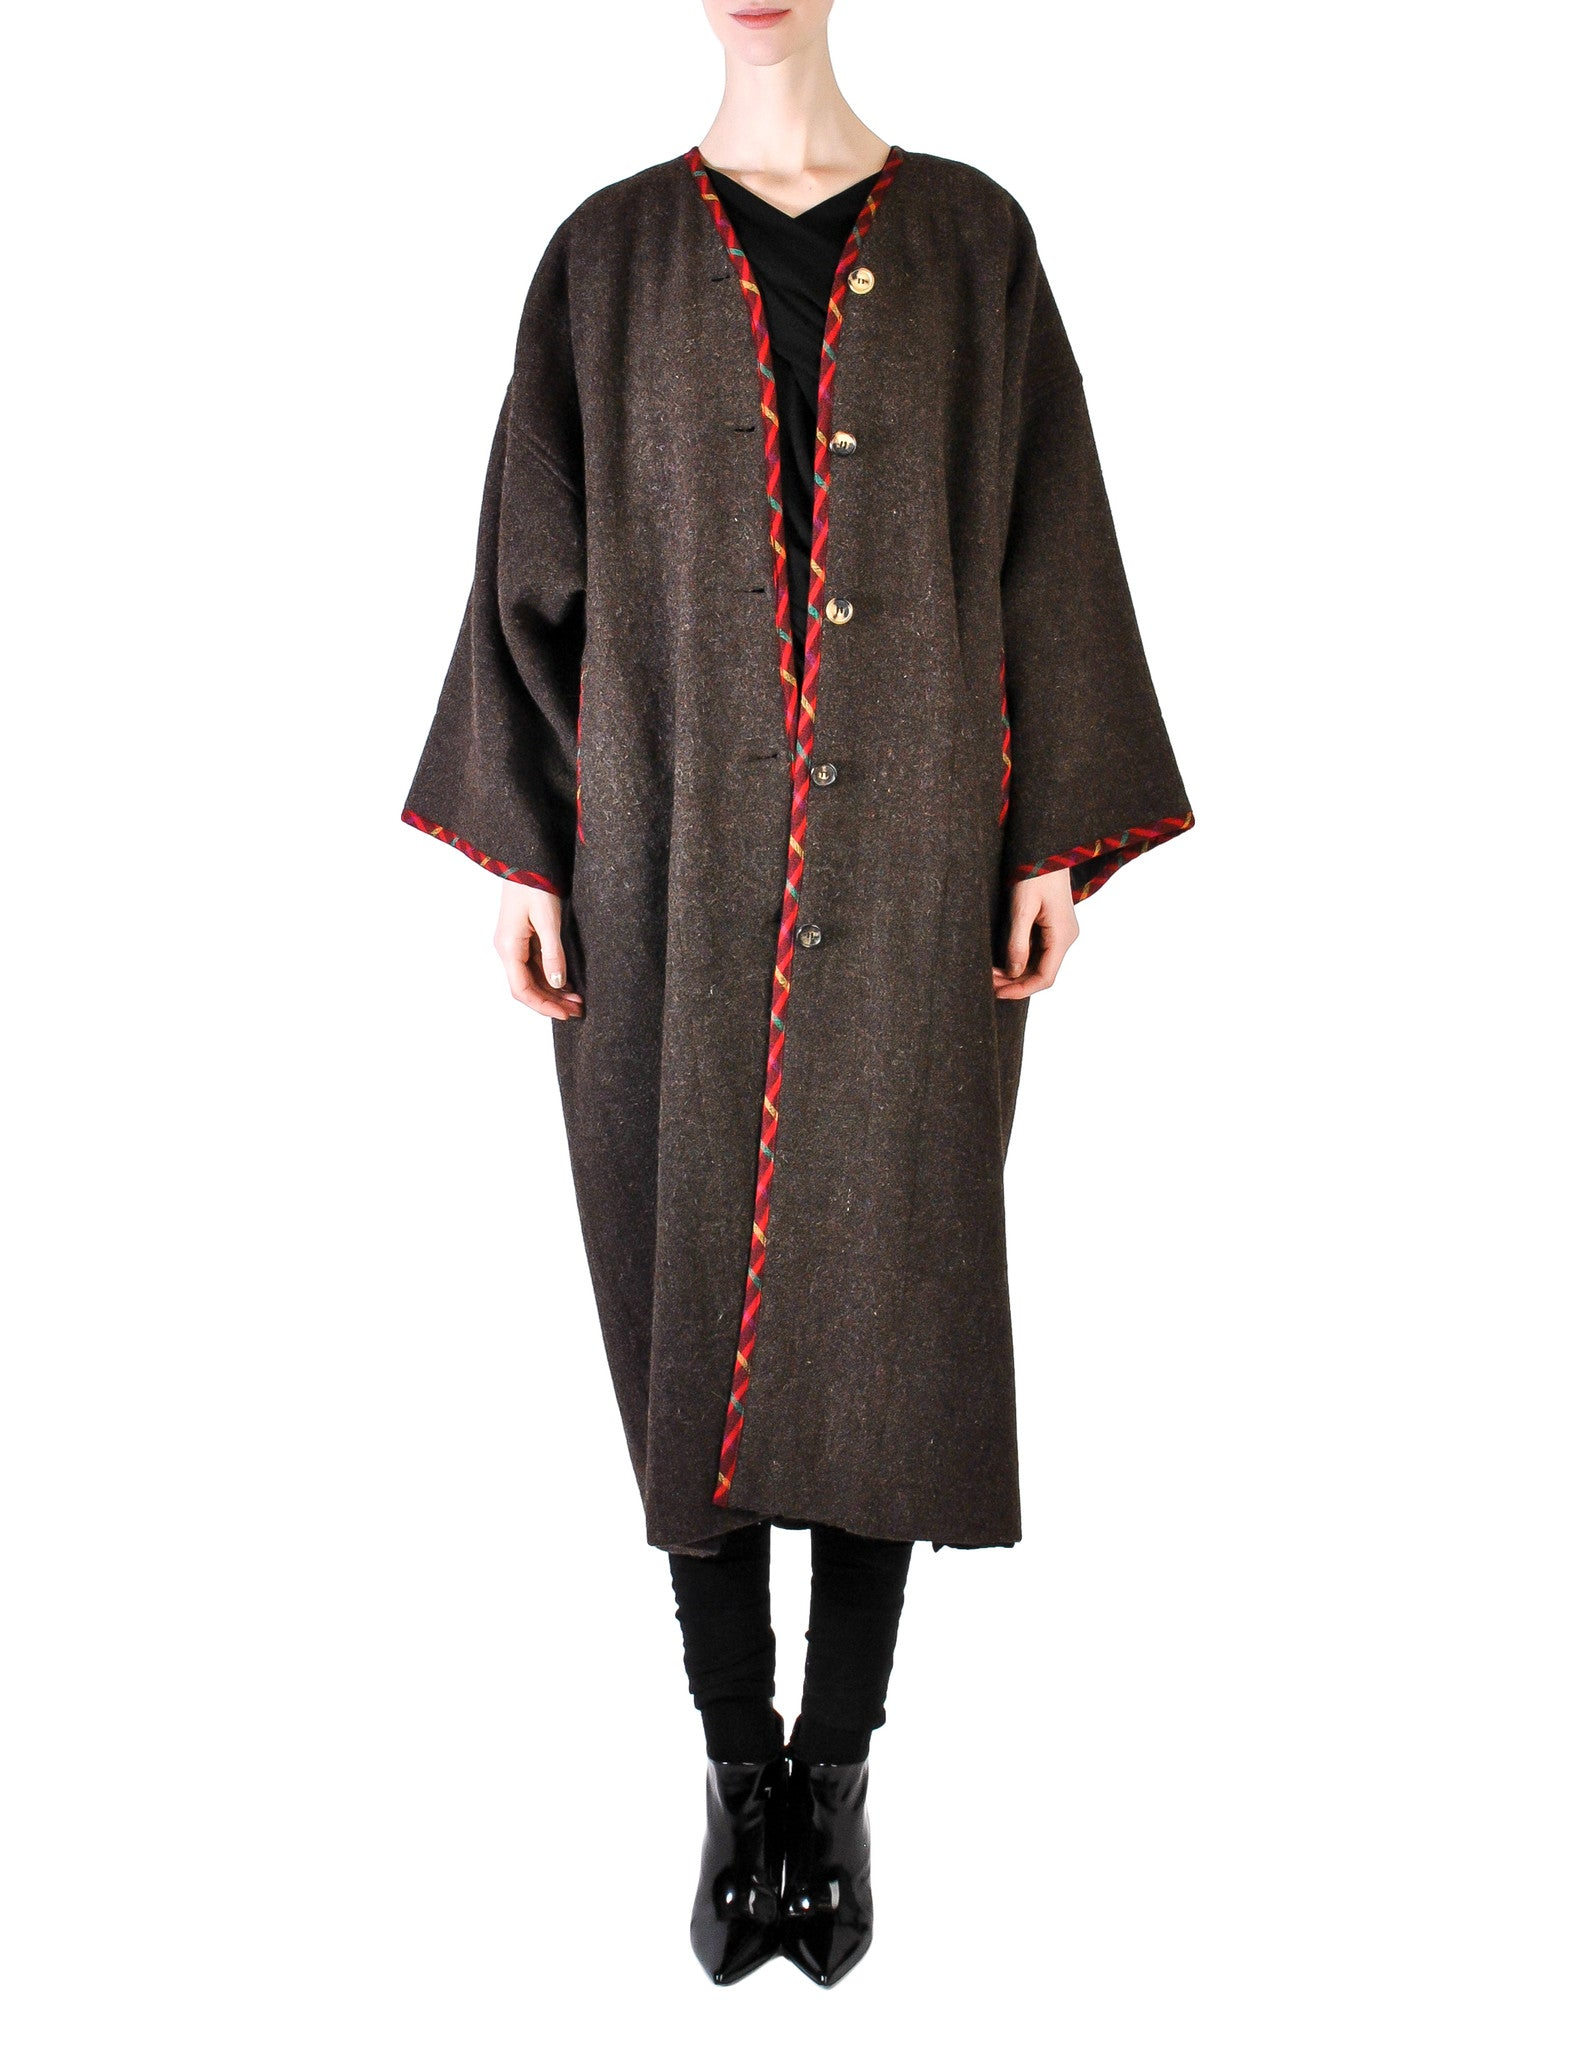 Kenzo Vintage Brown Wool Plantation Coat - Amarcord Vintage Fashion  - 1